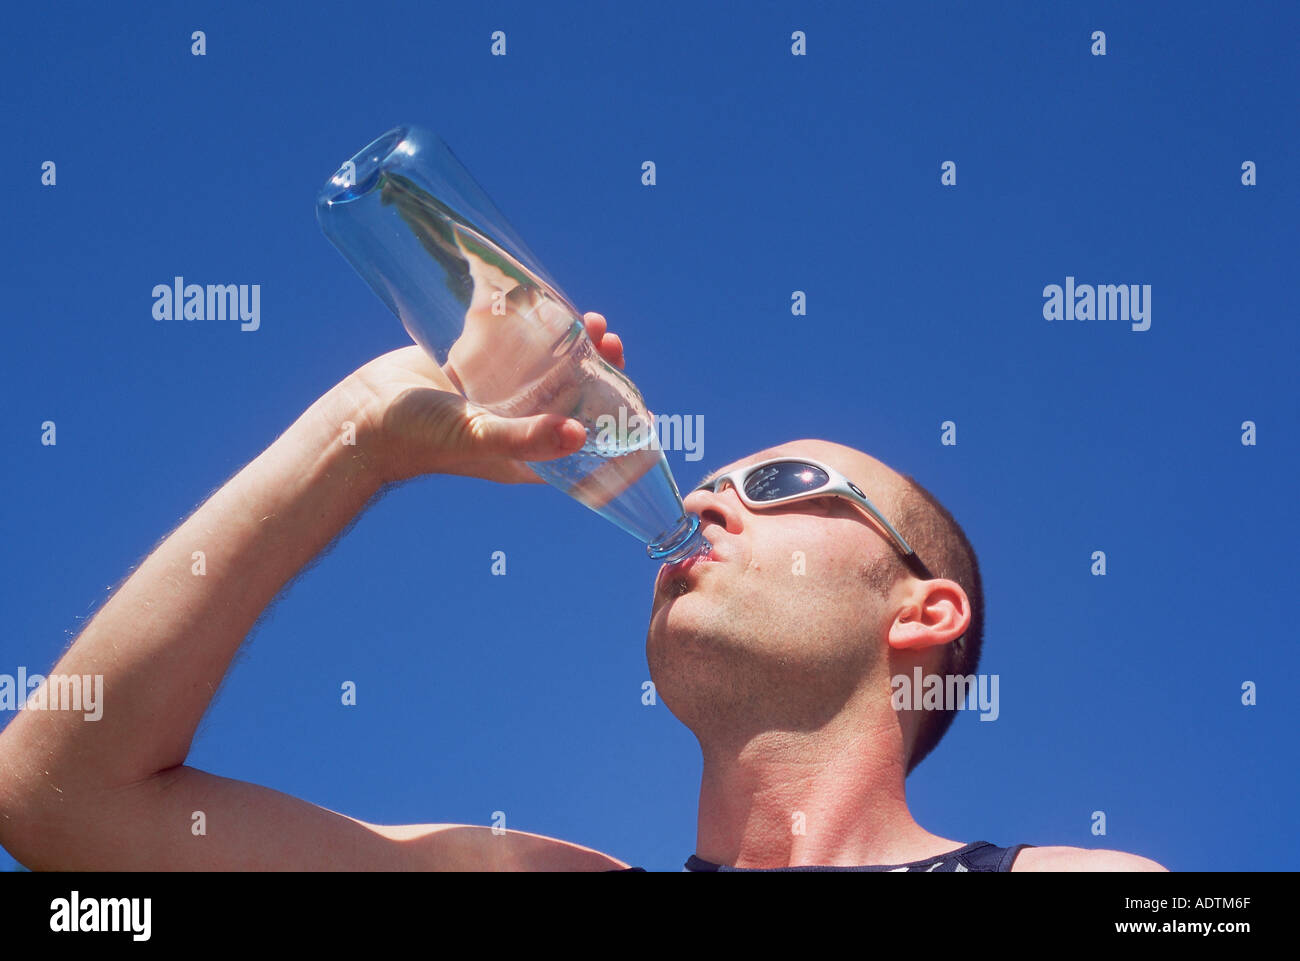 A thirsty athlete / Sportler - Stock Image